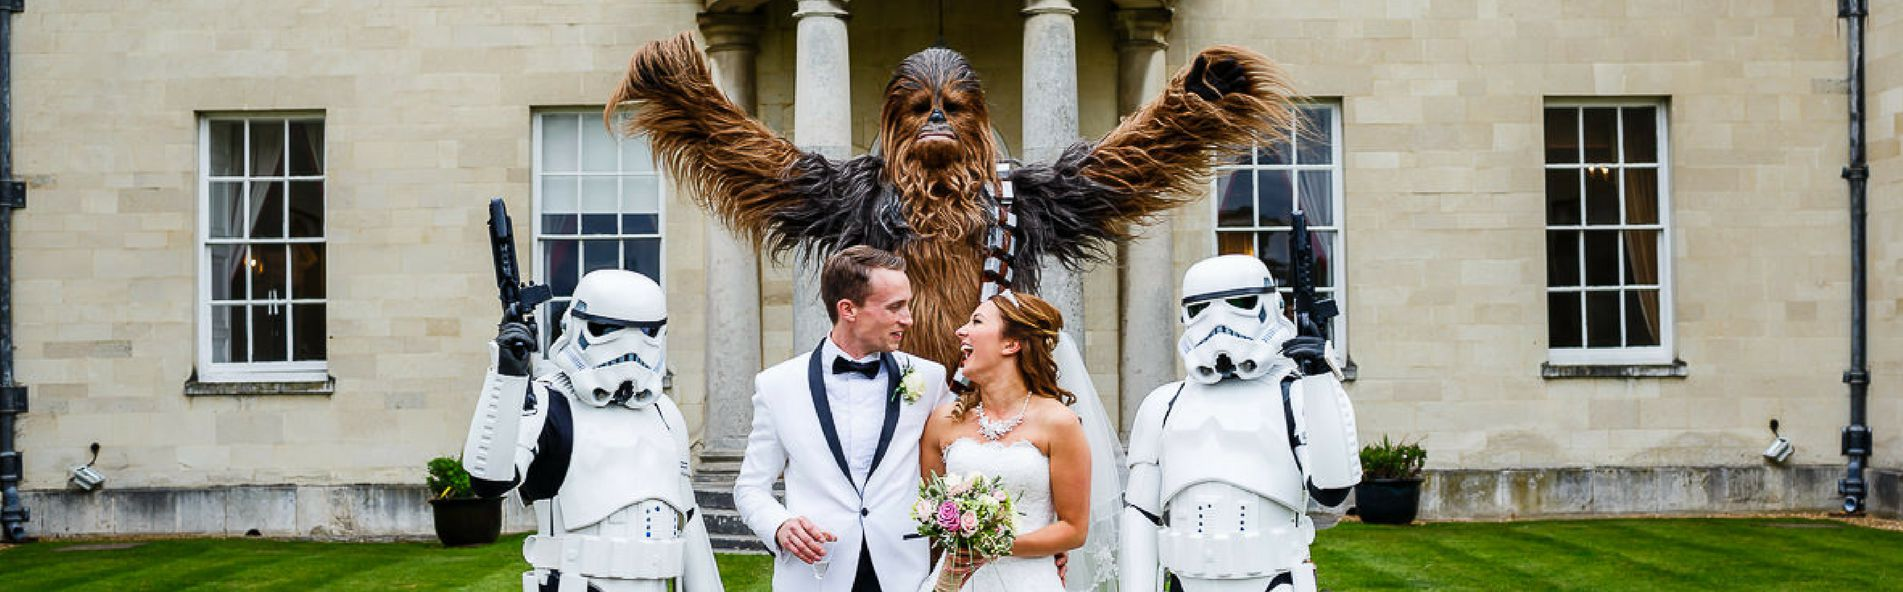 https://unconventionalwedding.co.uk/wp-content/uploads/2018/05/Star-Wars-Banner-1a.jpg